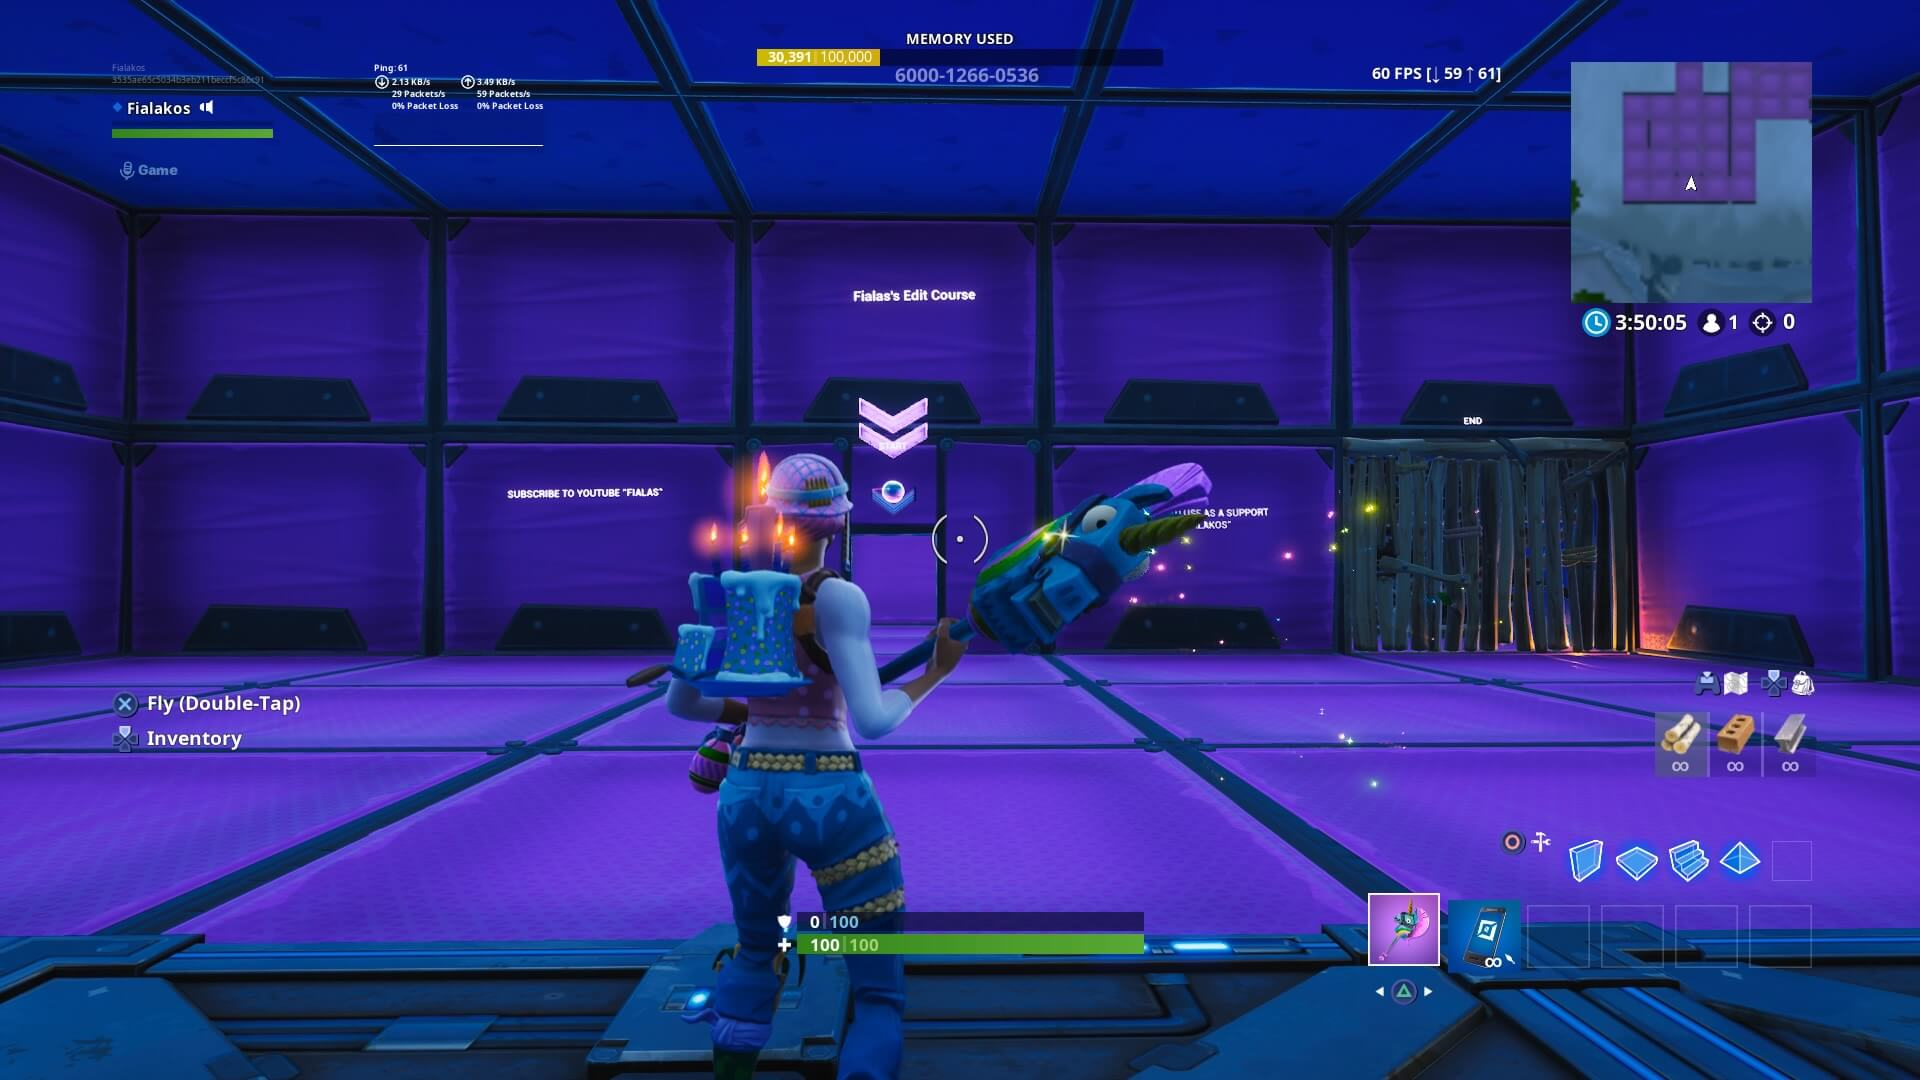 Simple Edit Course Fortnite Creative Map Codes Dropnite Com Creative mode was introduced over a year and a half ago into fortnite, and it has undoubtedly changed the game for the better. dropnite com